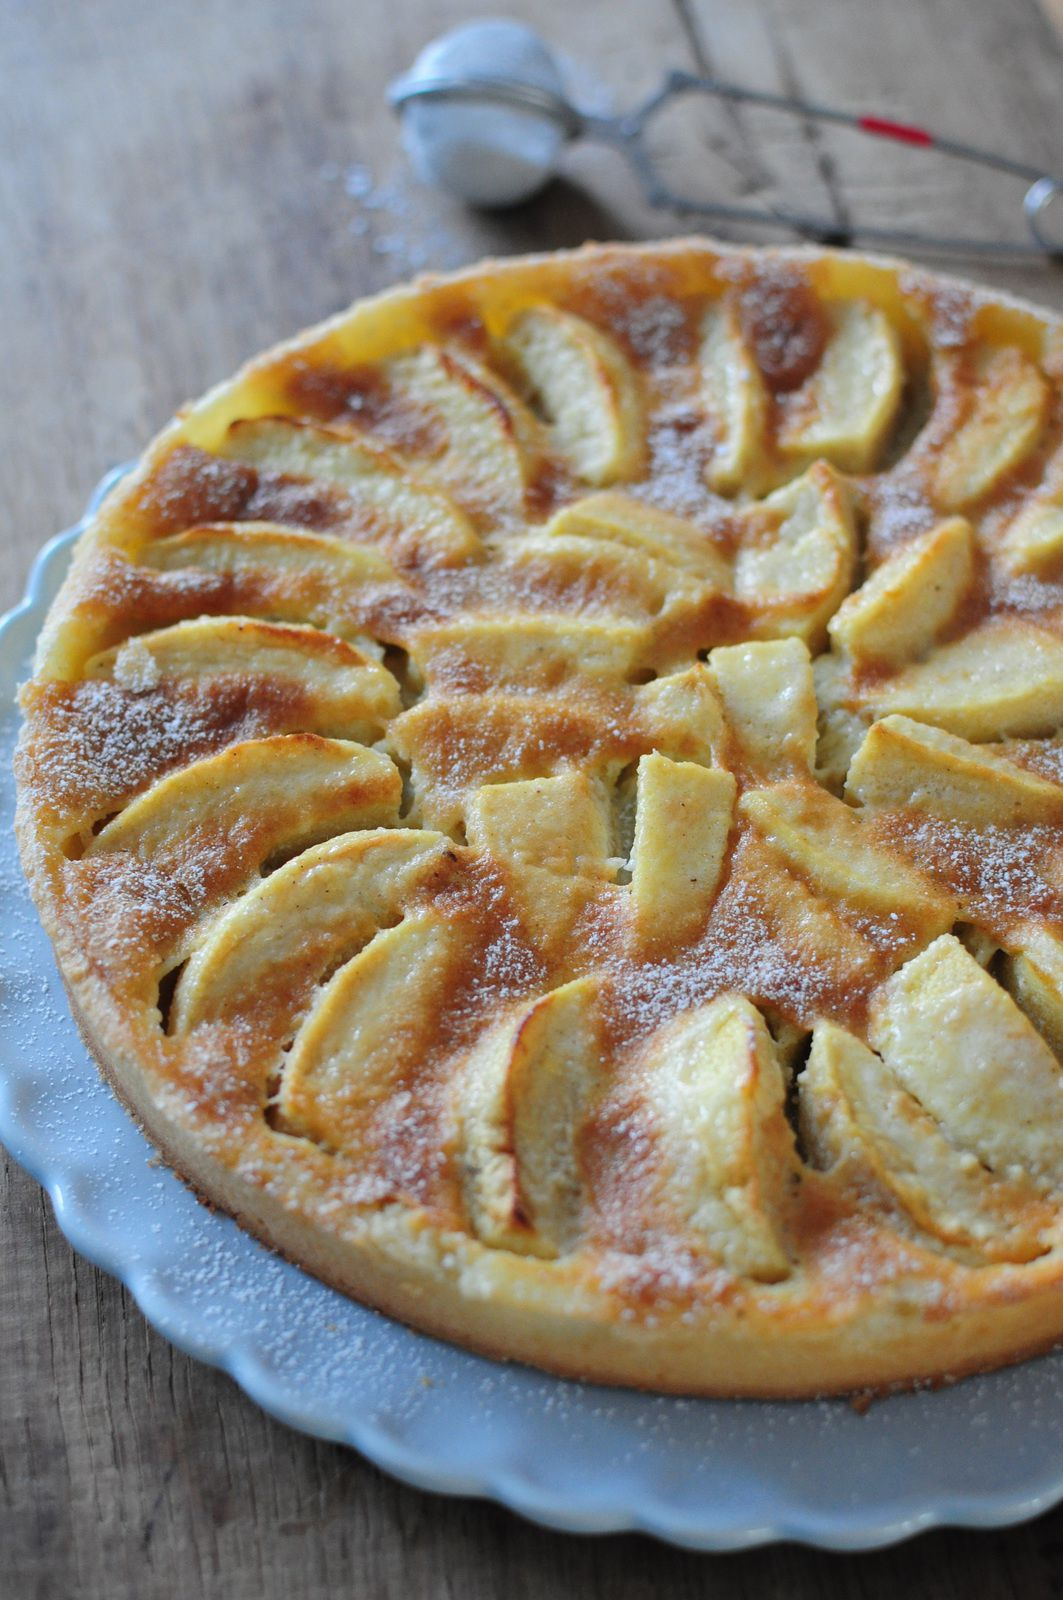 tarte normande aux pommes blog de cuisine cr ative recettes popotte de manue. Black Bedroom Furniture Sets. Home Design Ideas